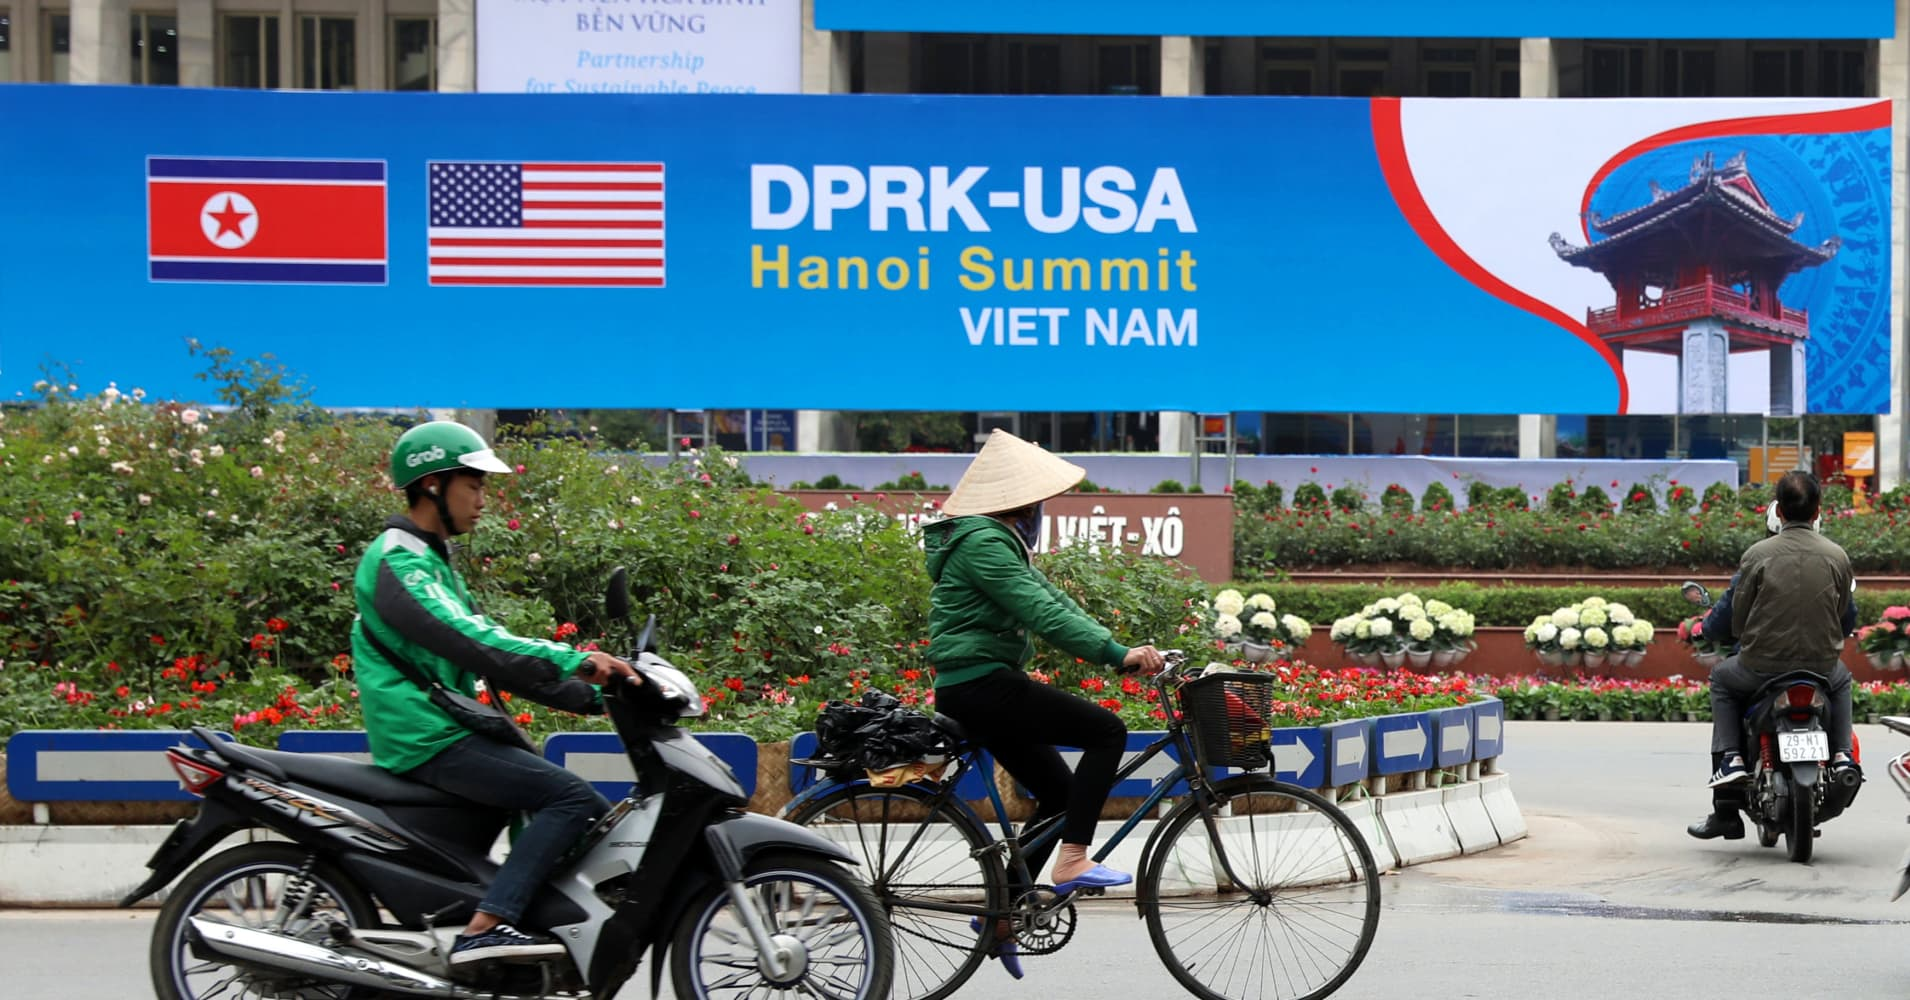 Vietnamese tanker bound for North Korea with gasoline cargo as Trump, Kim meet in Hanoi